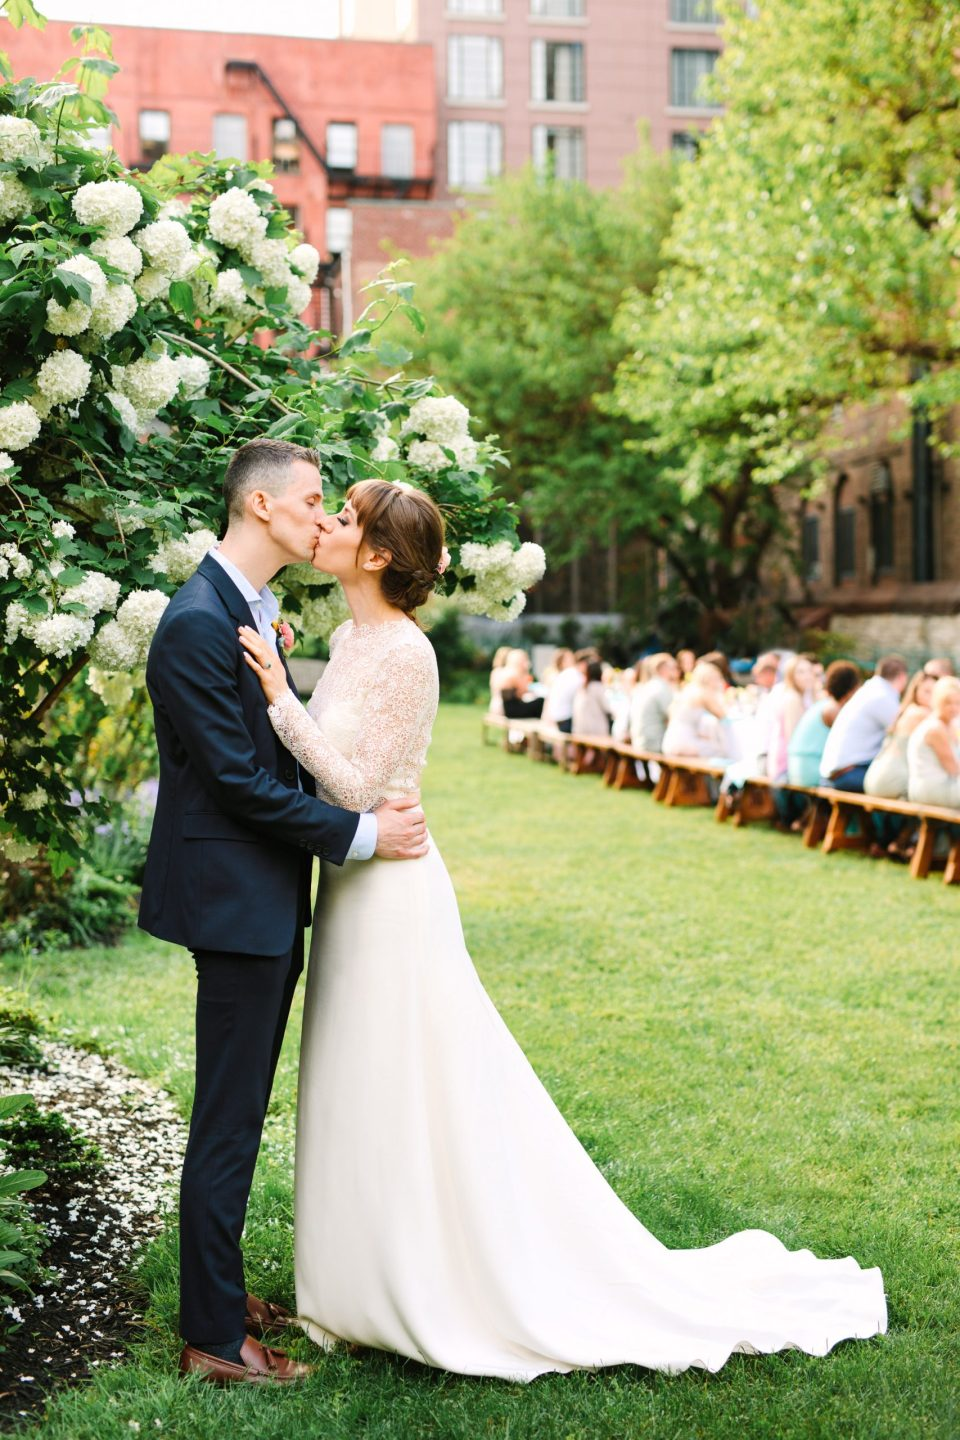 Emily and Luke kissing with guests in the background - www.marycostaweddings.com